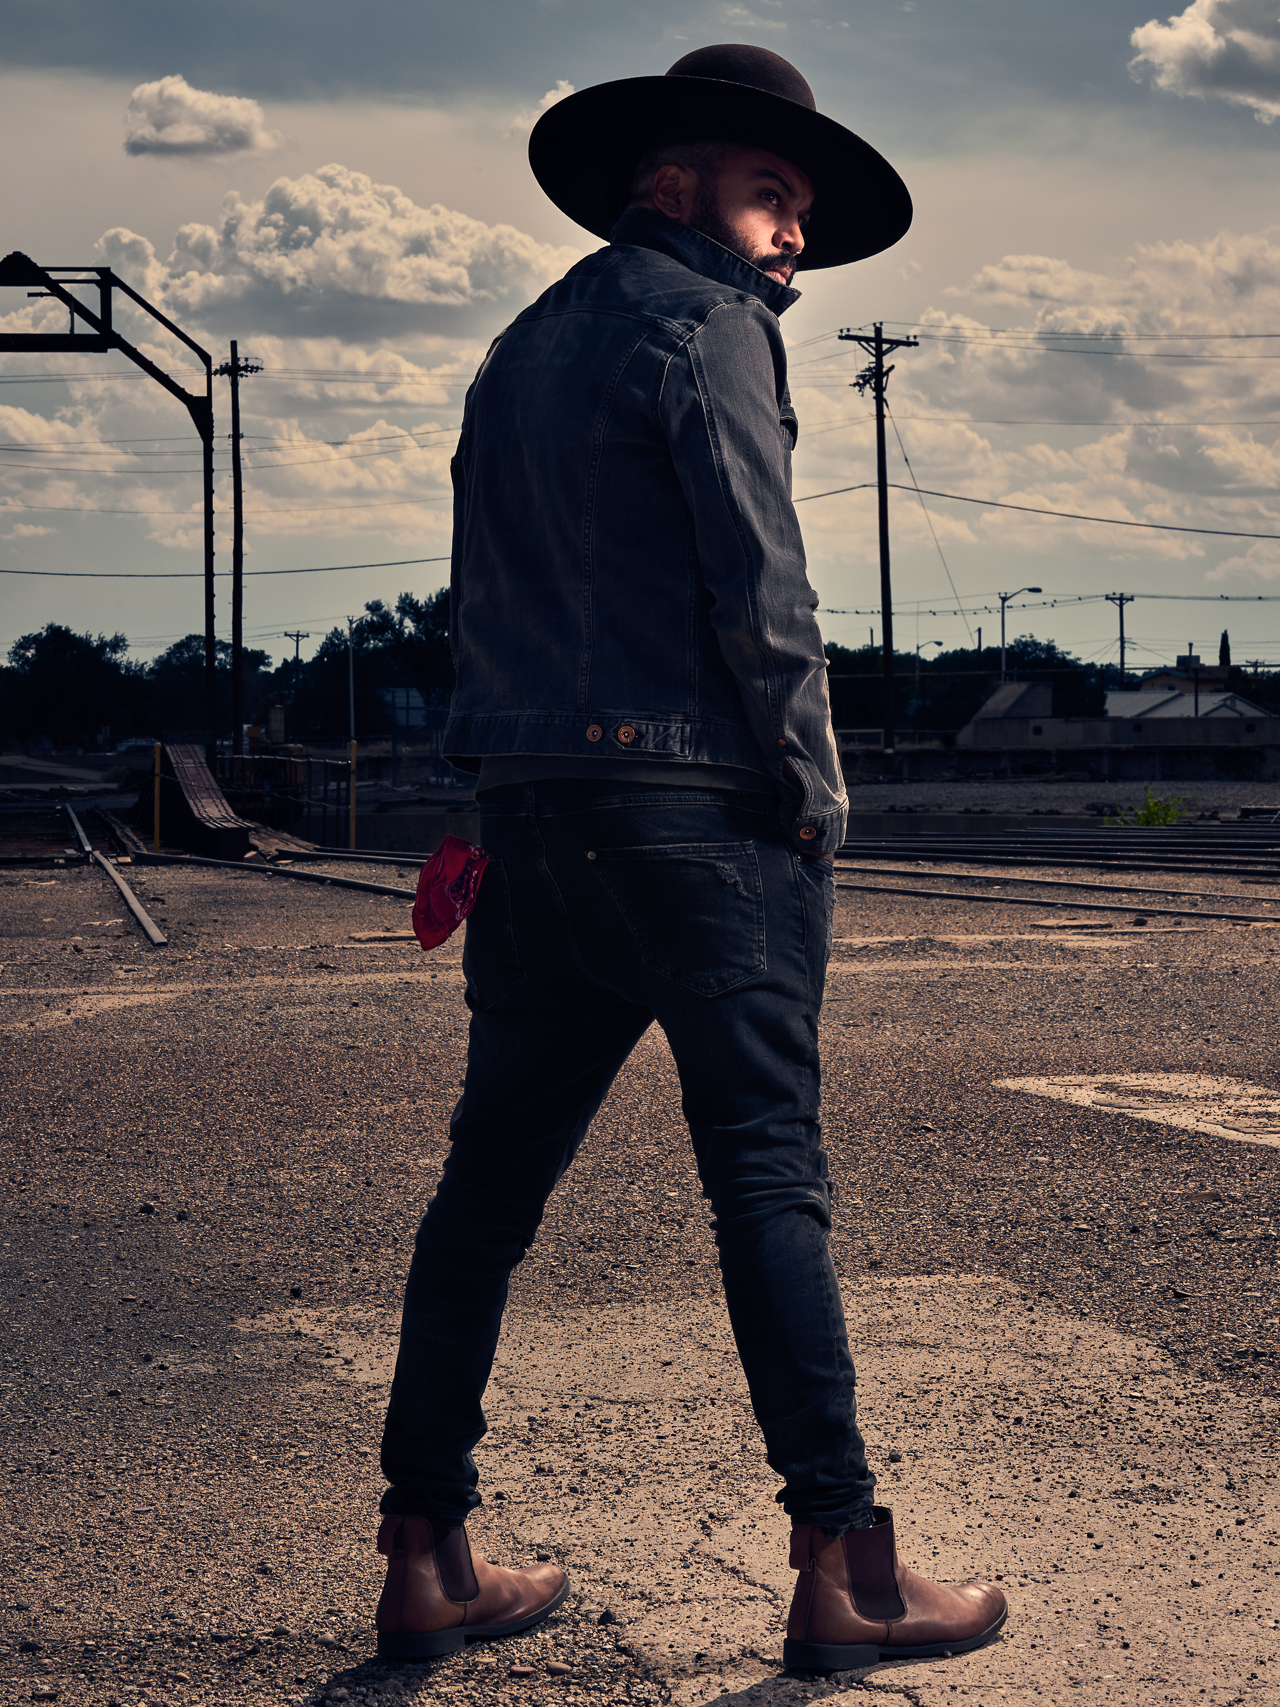 New Mexico folk musician Garry Blackchild photographed at the Albuquerque Rail yards